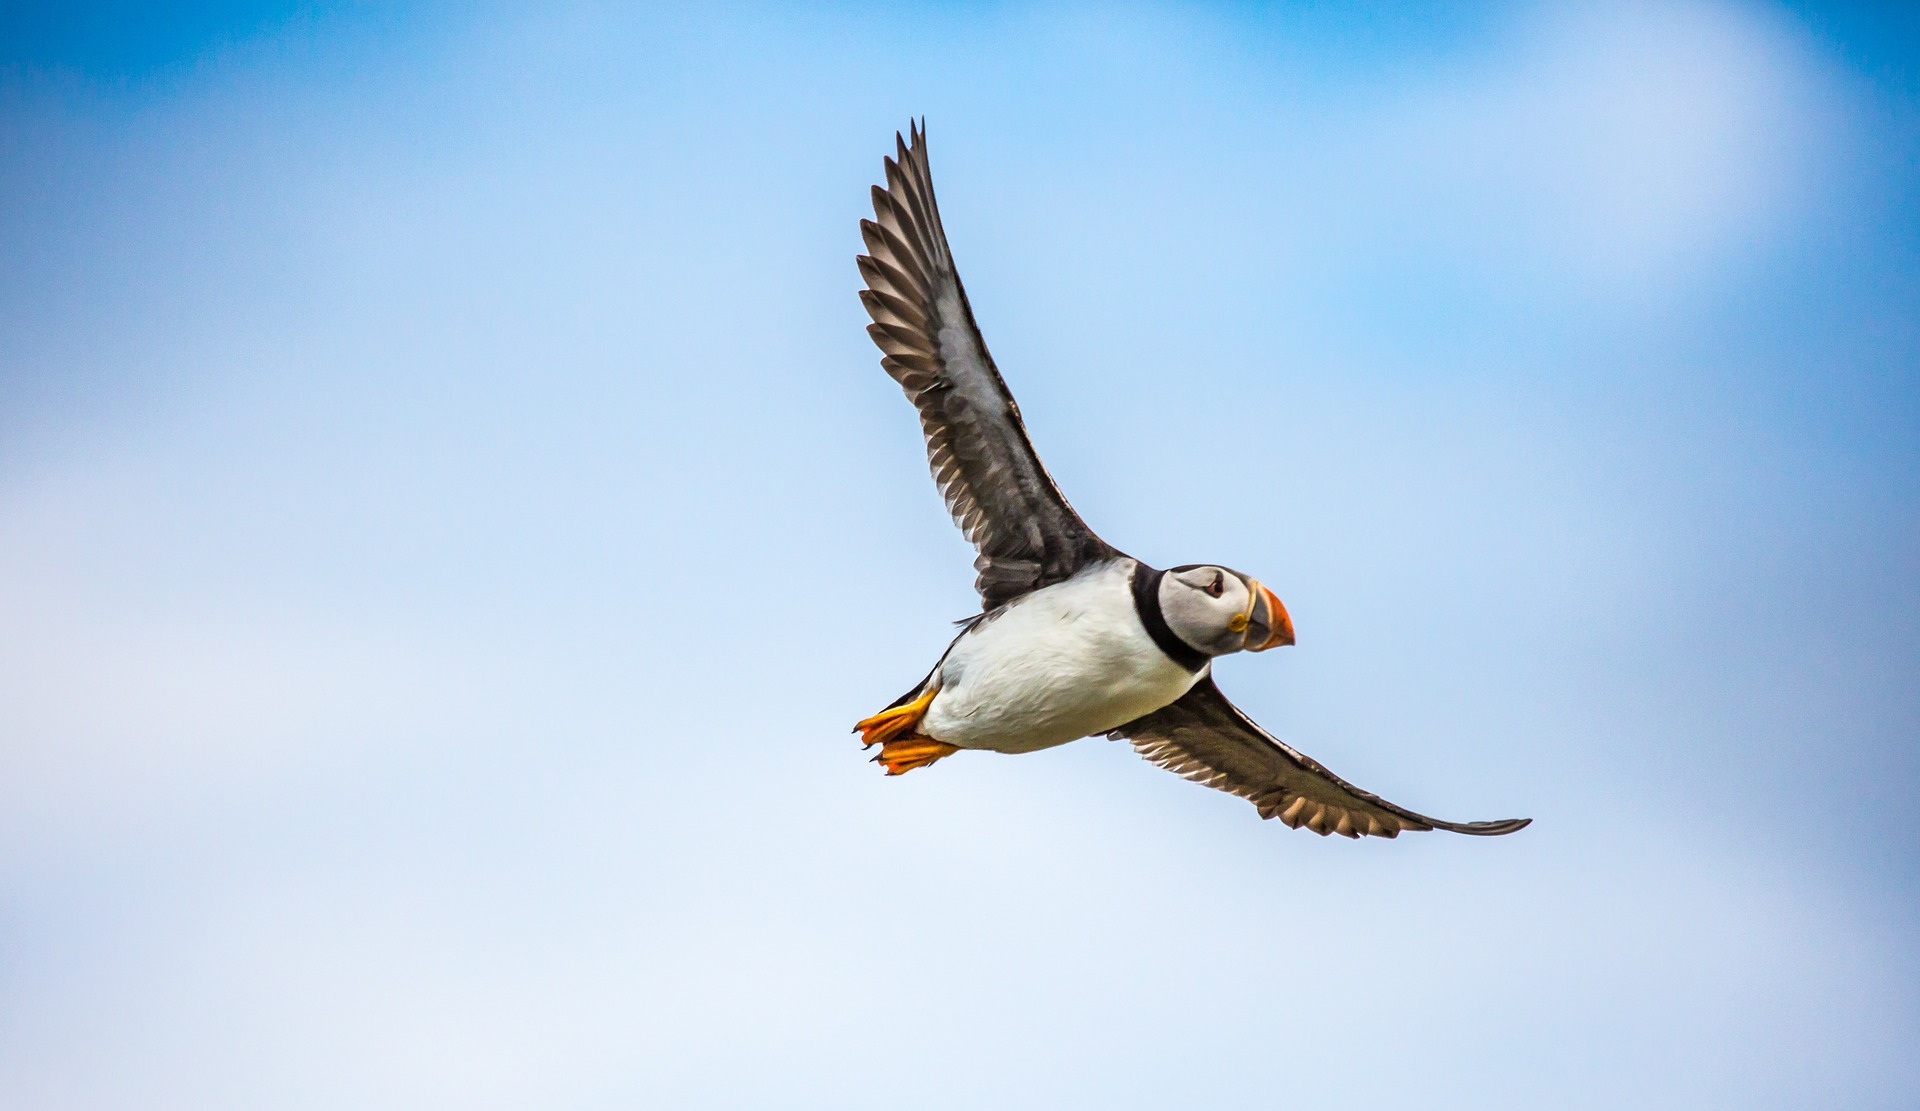 flying puffin in iceland, blue sky